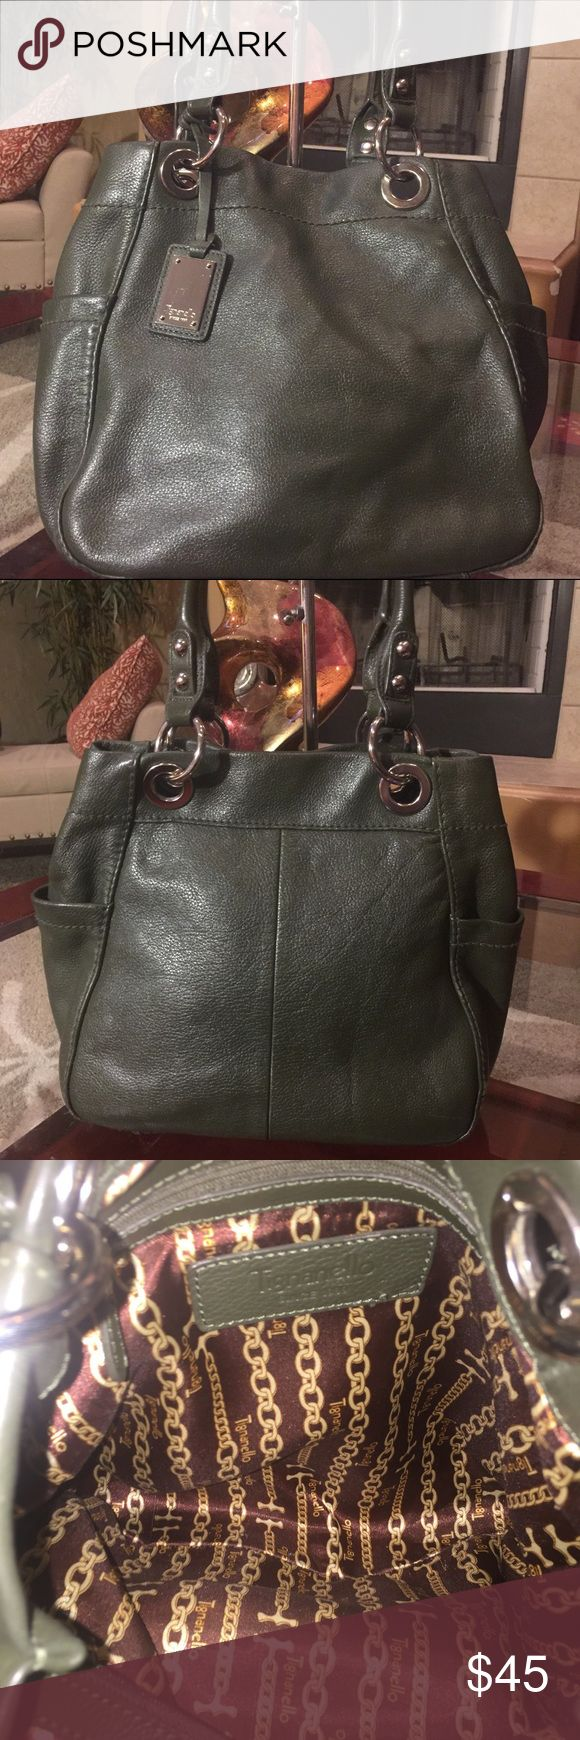 Leather Tignanello Handbag Gorgeous leather Tignanello shoulder bag in great condition. This is a spectacular olive color. Tignanello Bags Shoulder Bags